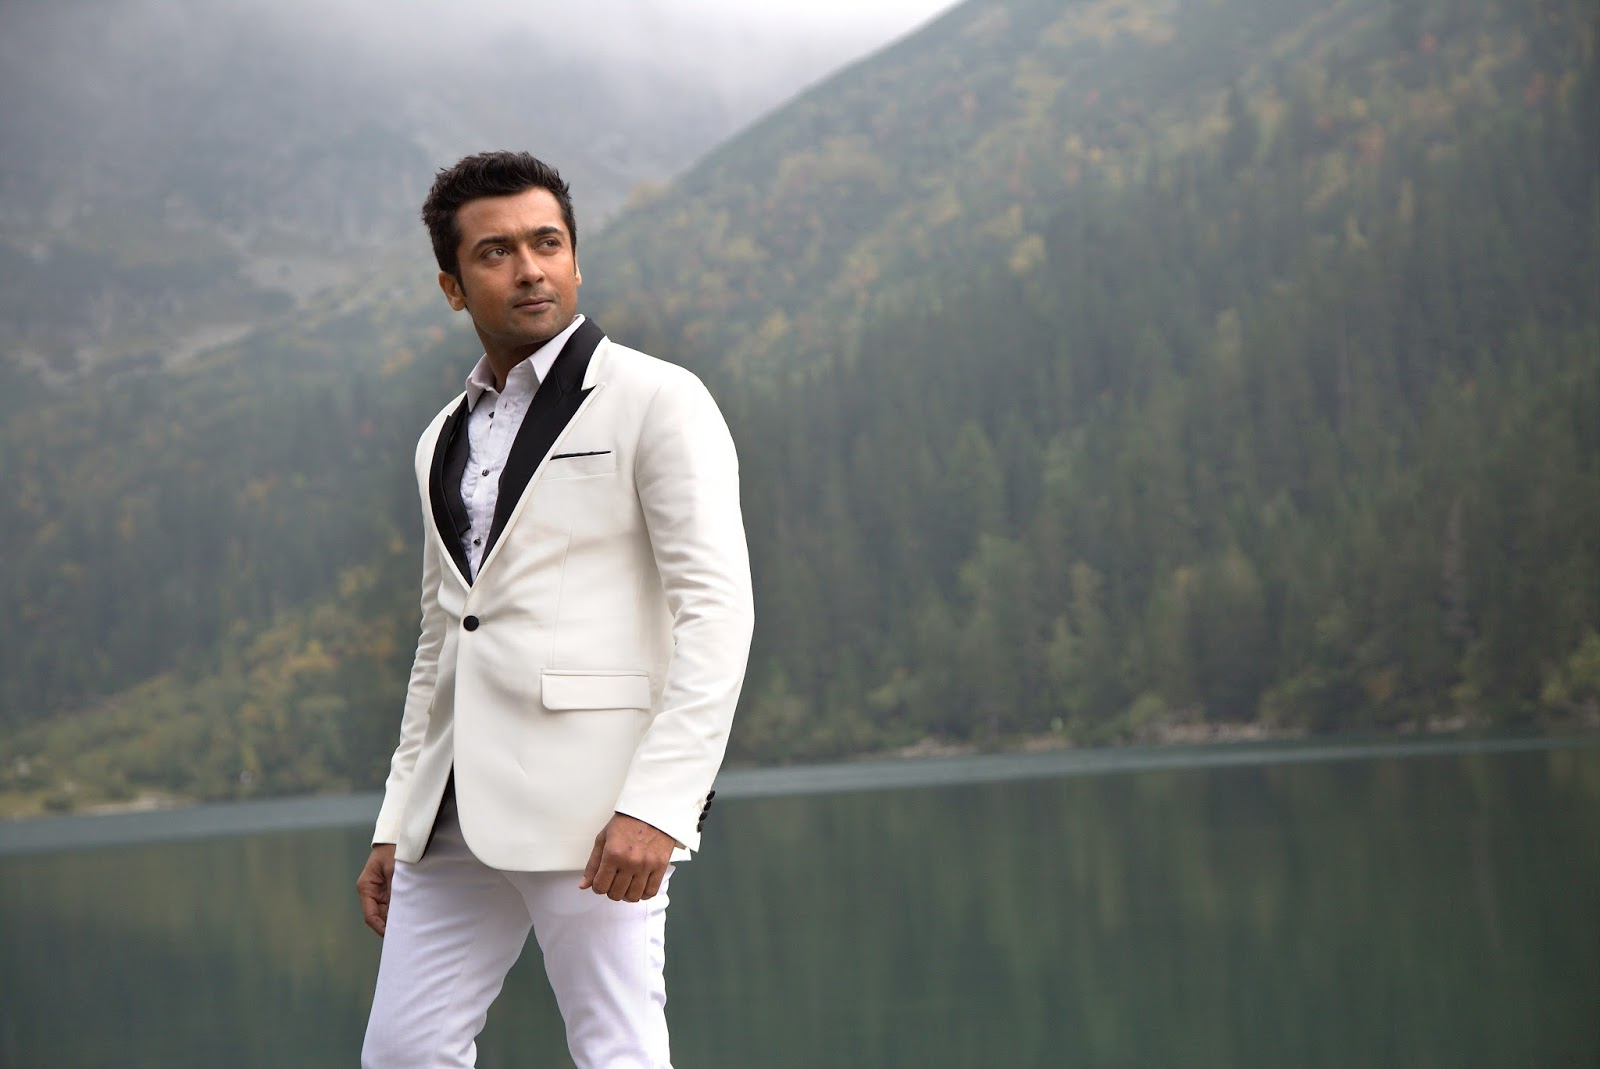 Handsome surya fans club surya in 24 hd pictures surya in 24 hd pictures stay tuned for more pics thecheapjerseys Choice Image